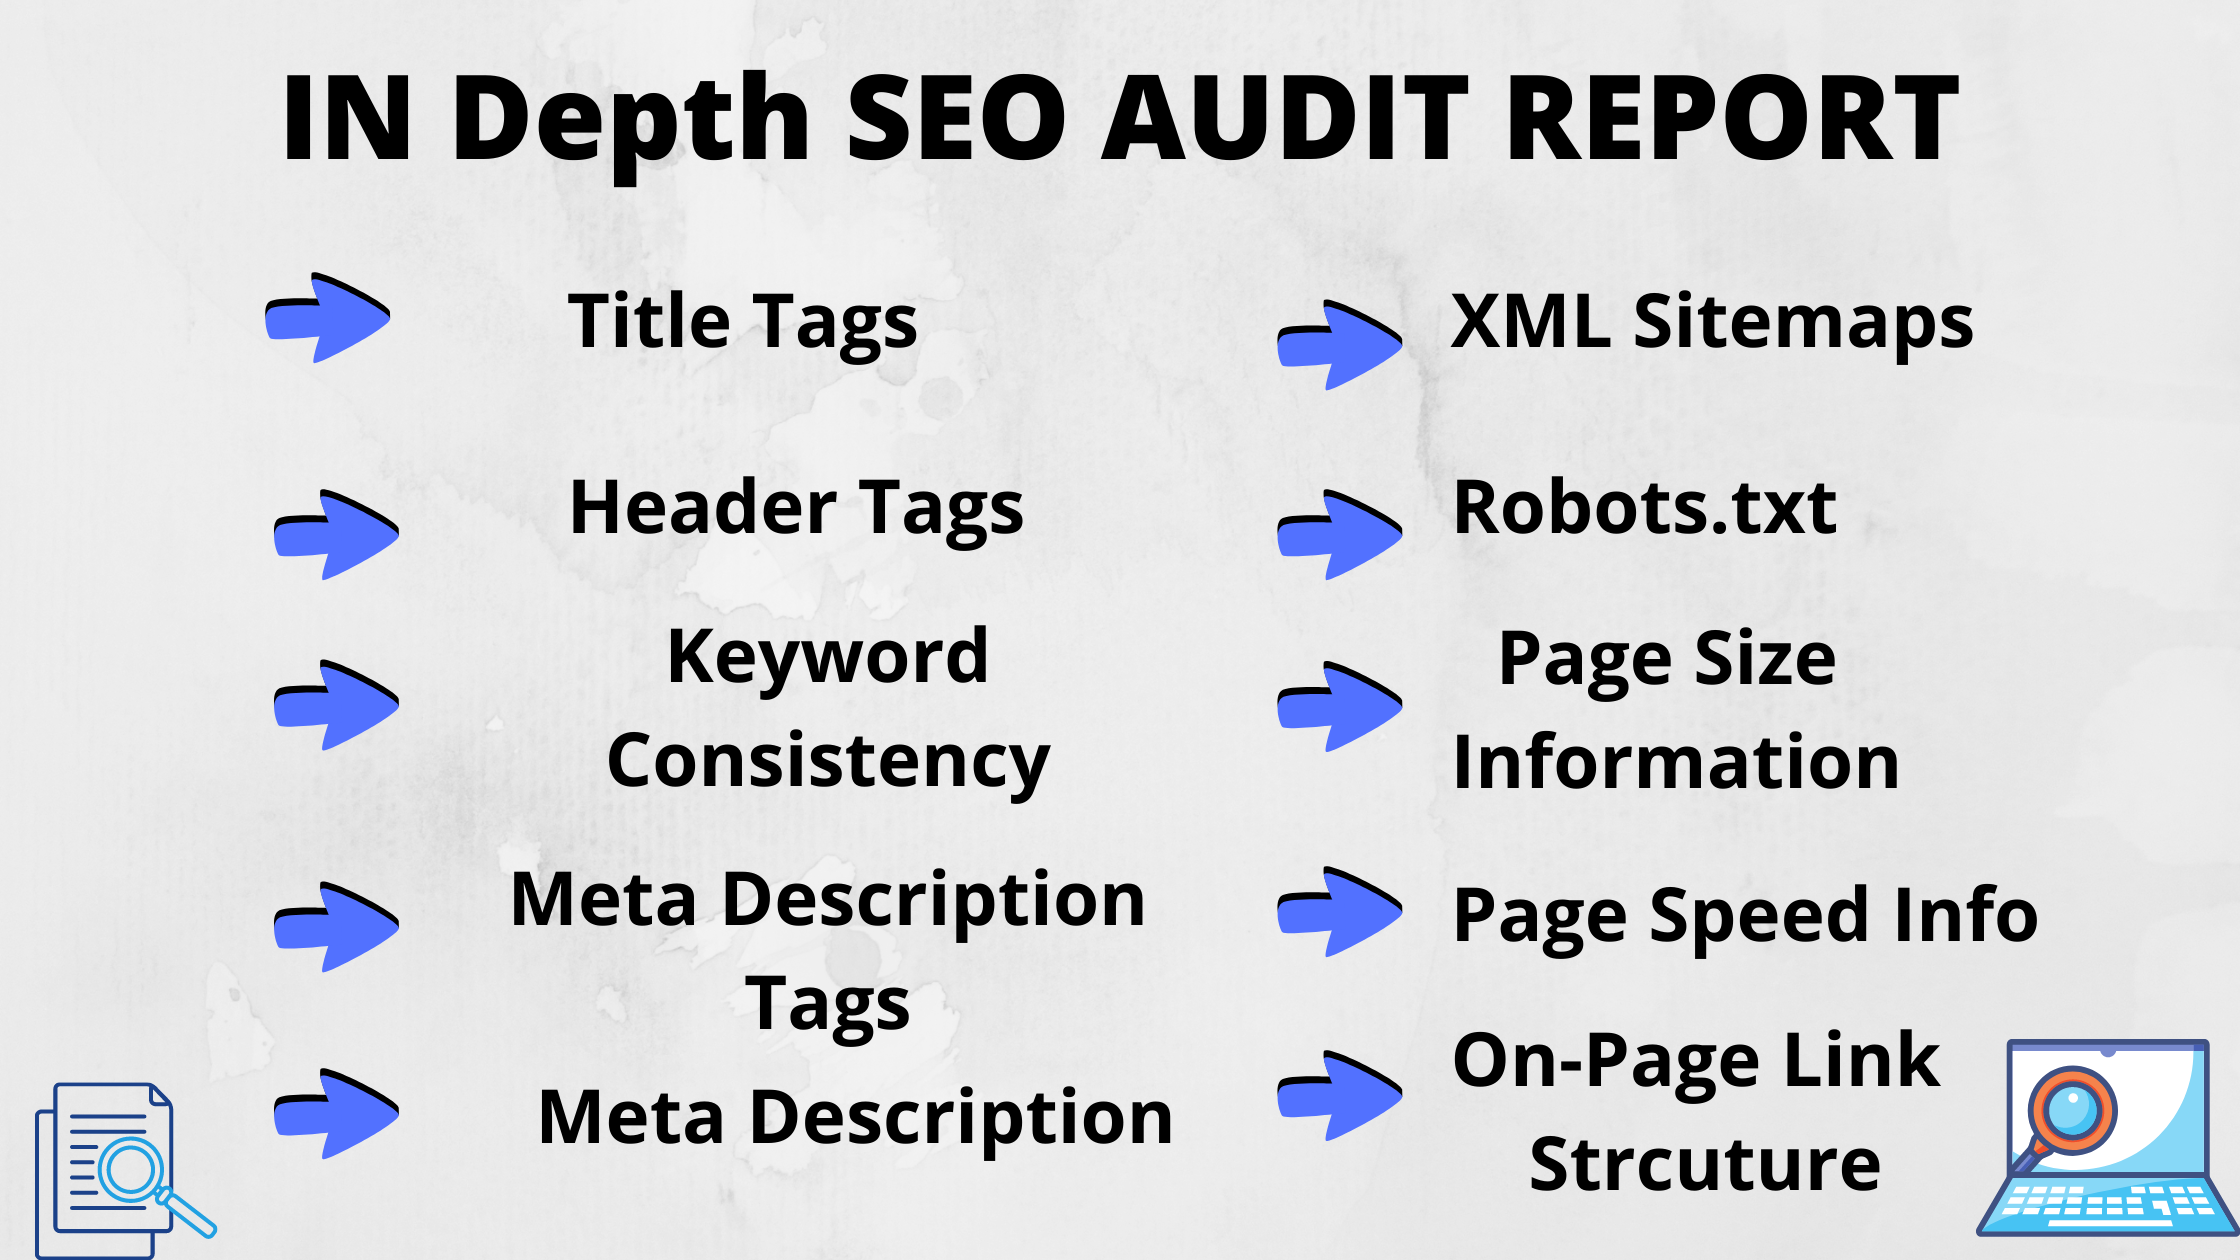 I WILL Do a complete SEO AUDIT of your website.